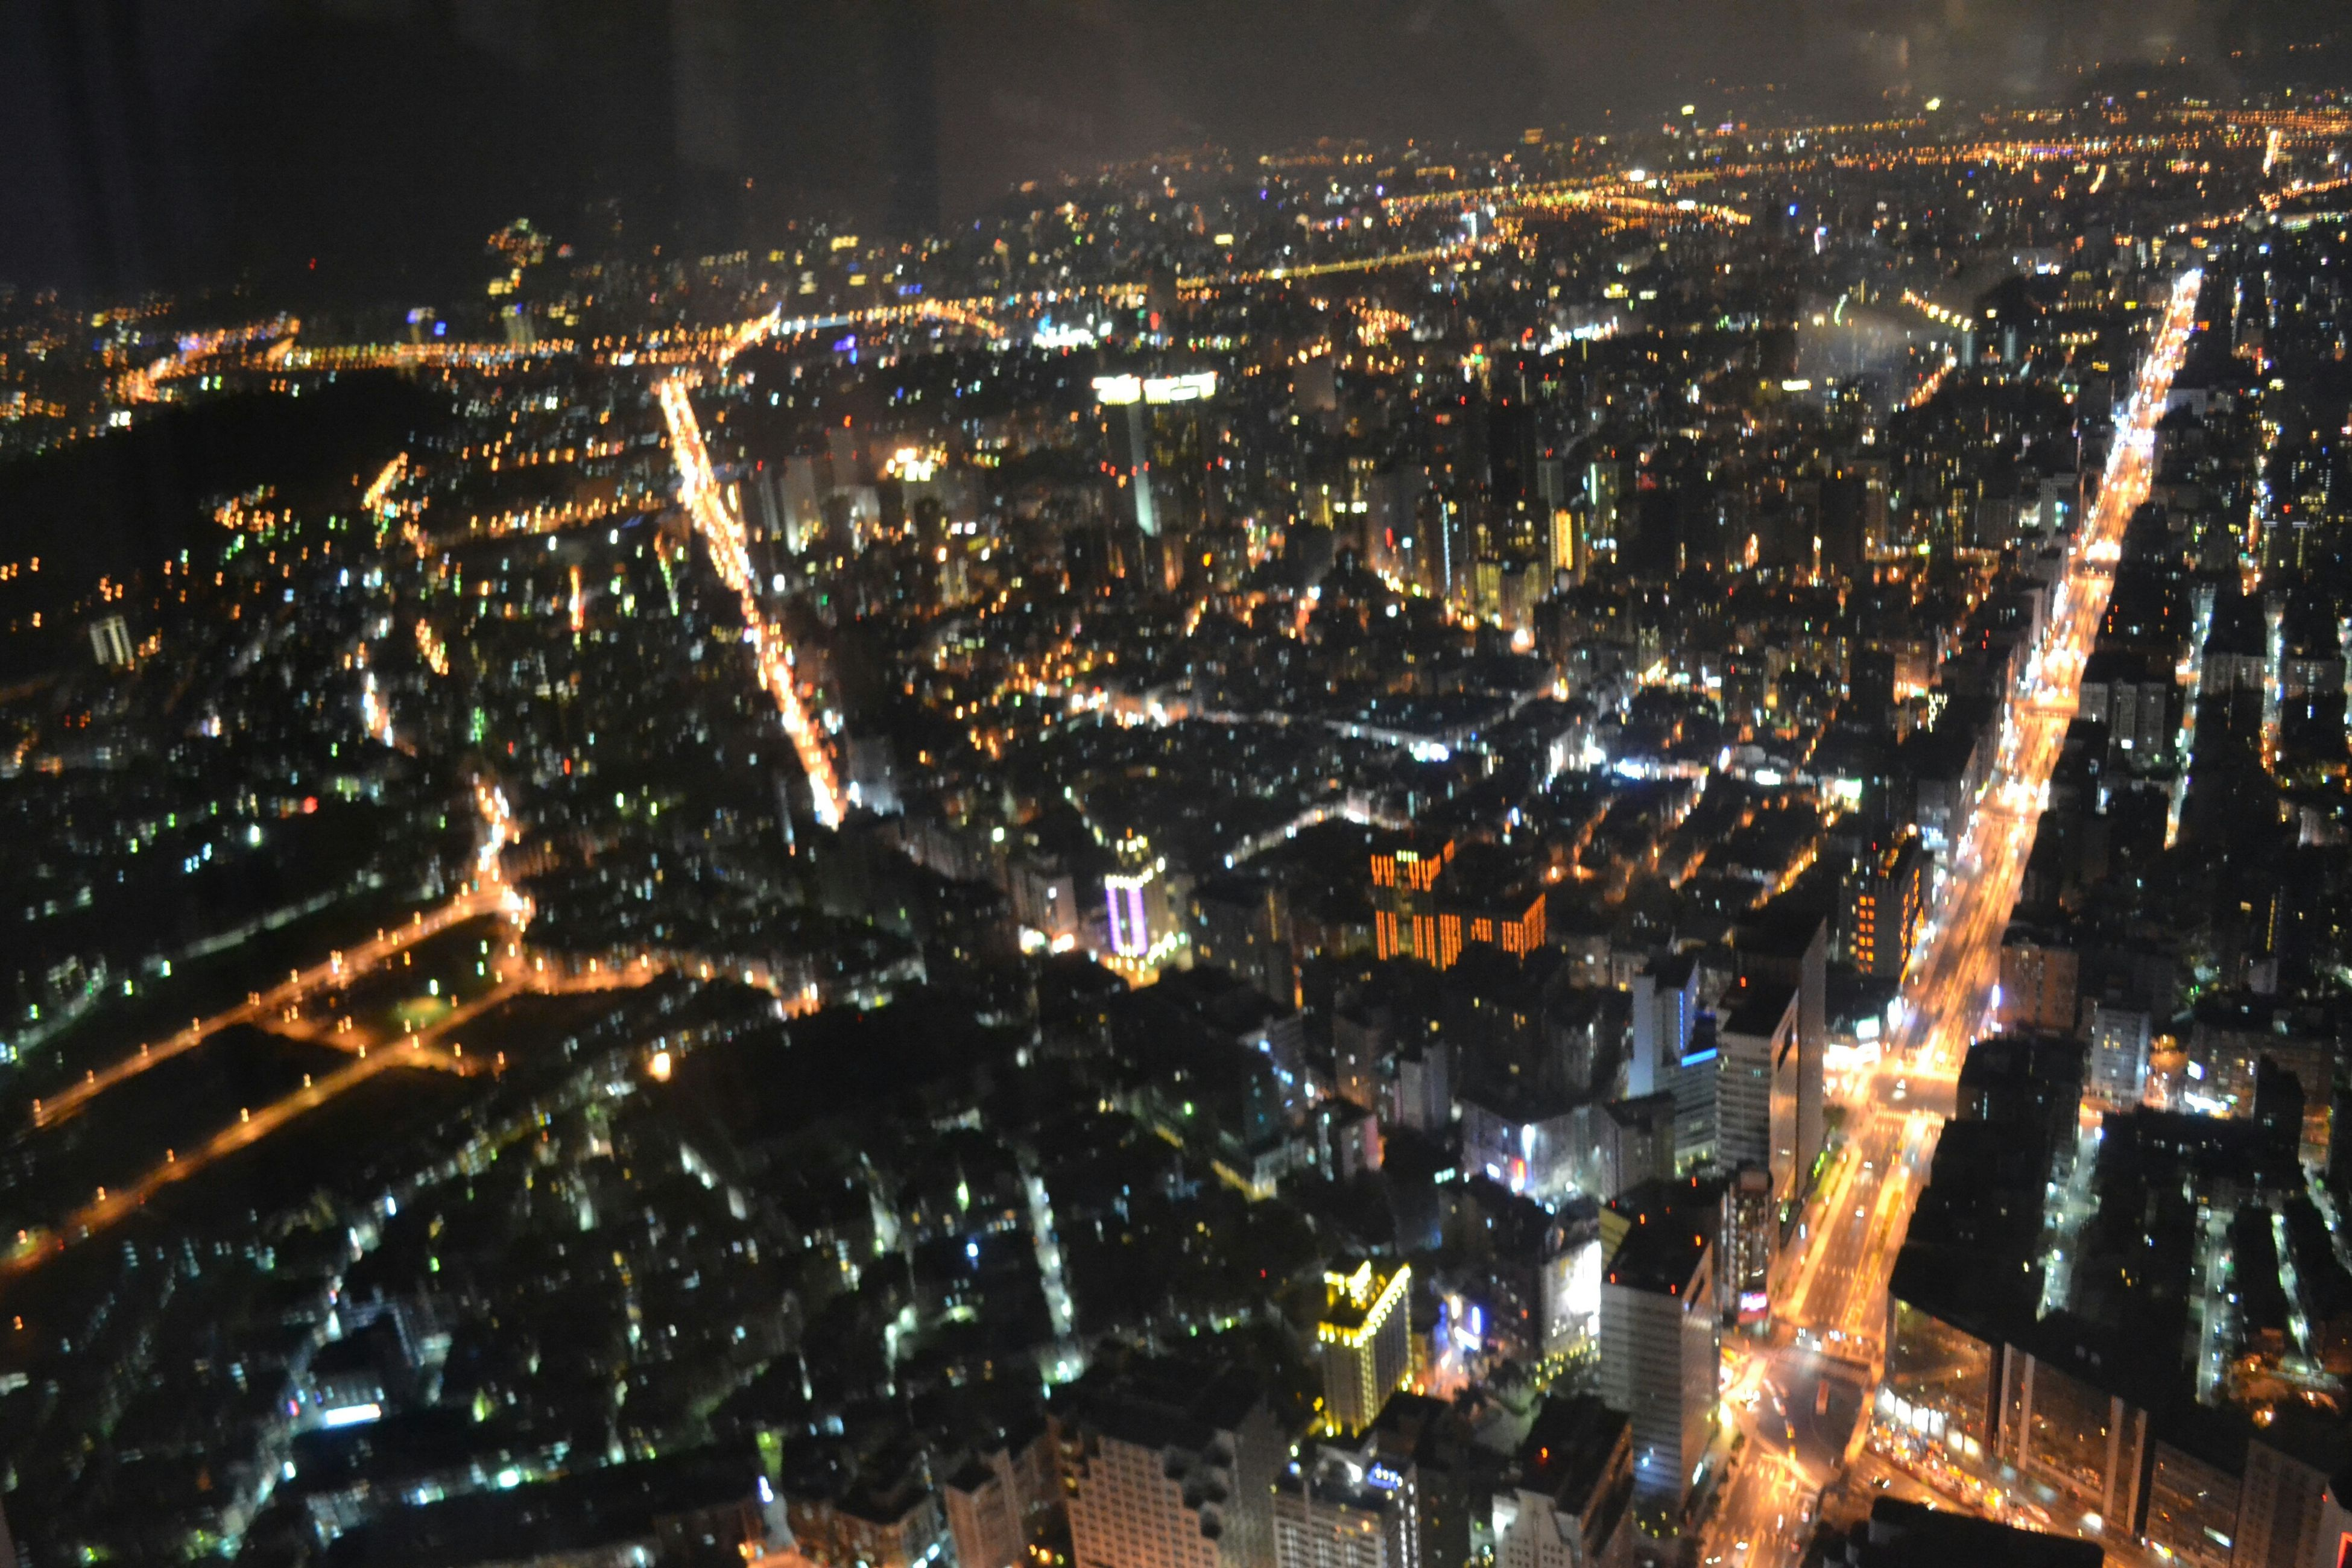 cityscape, night, illuminated, city, crowded, building exterior, architecture, aerial view, built structure, high angle view, residential district, residential building, city life, skyscraper, residential structure, capital cities, community, travel destinations, outdoors, tower